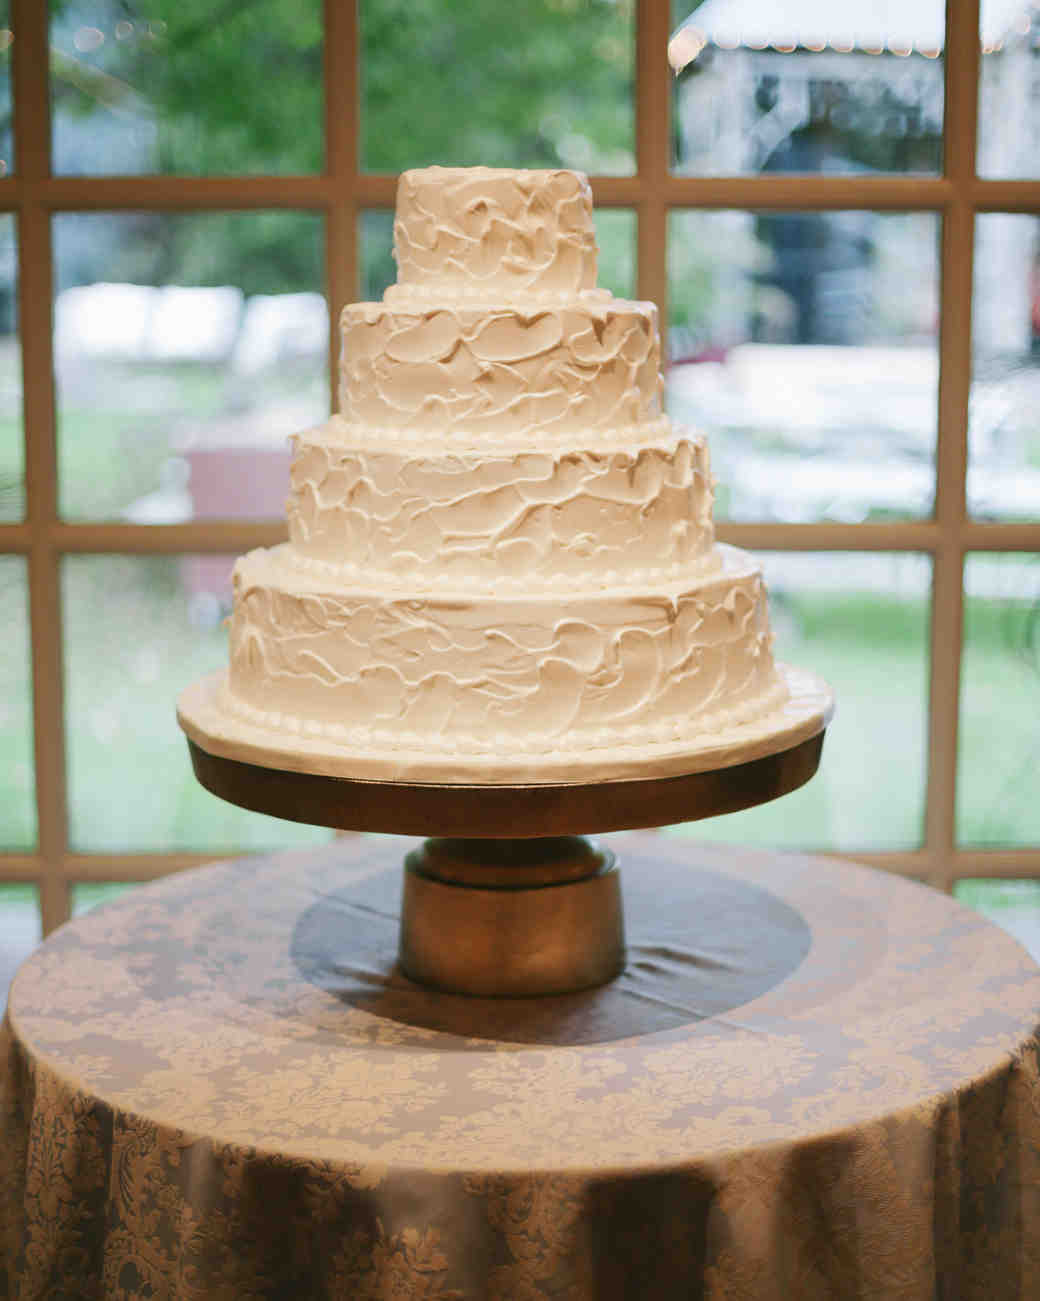 Four-Tiered White Wedding Cake with Textured Icing